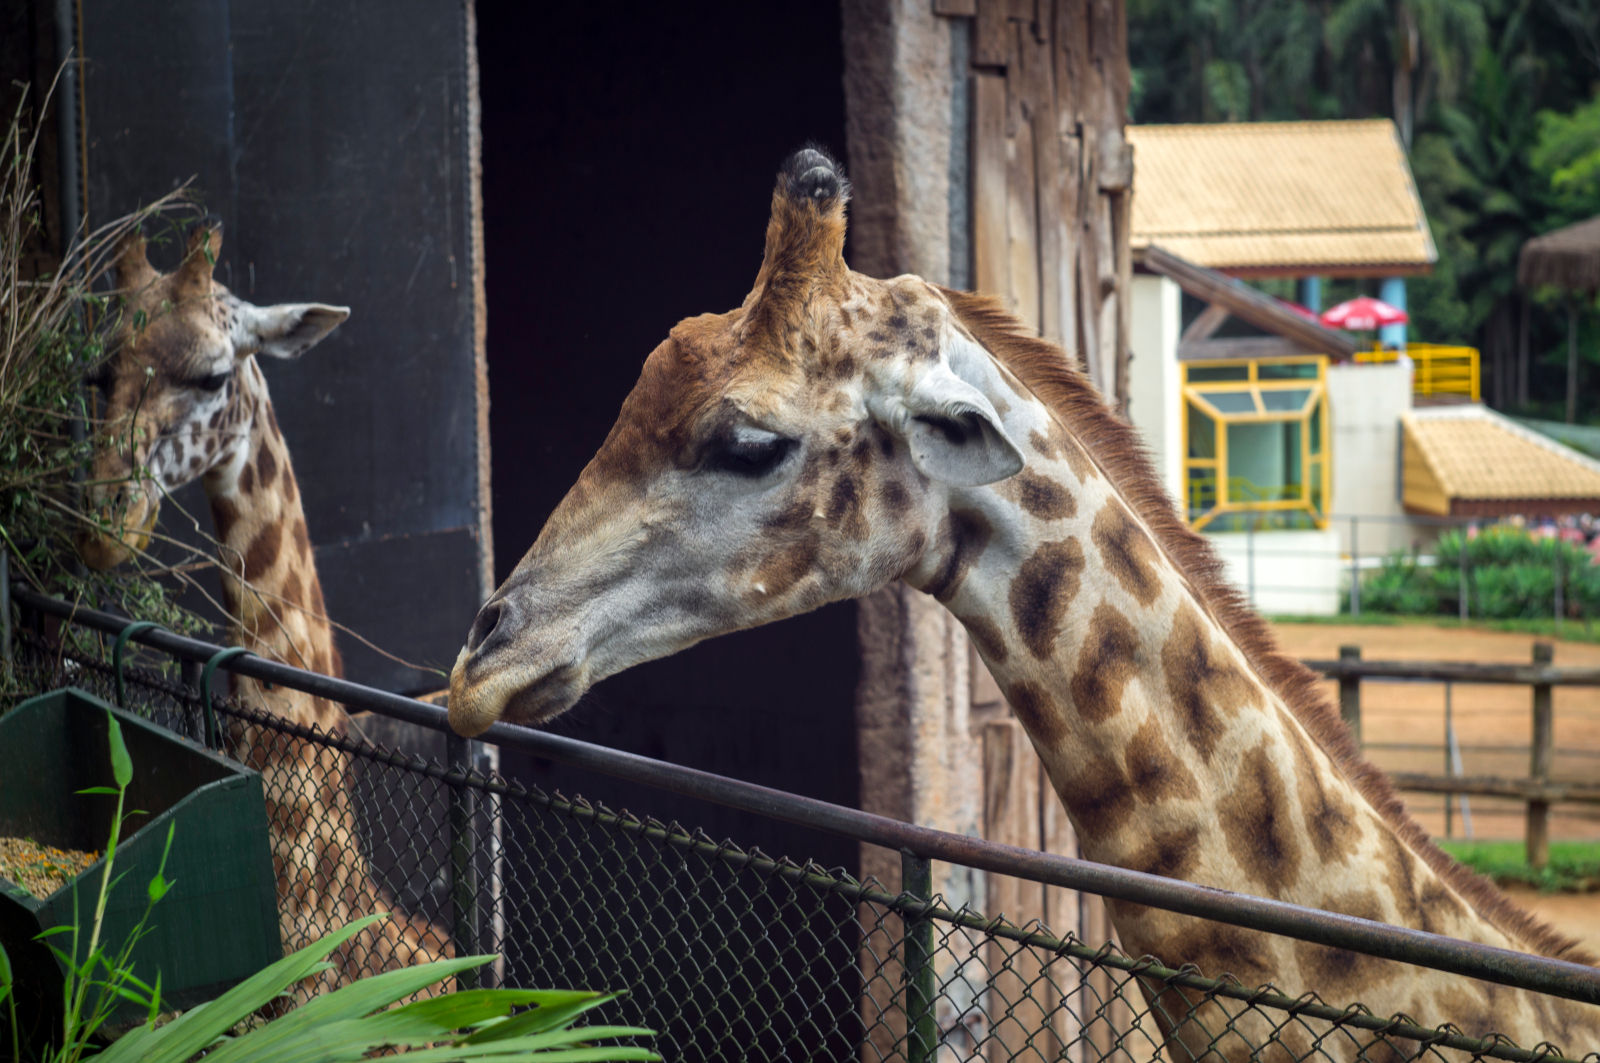 Zoochosis and the Many Ways We Have Failed Zoo Animals